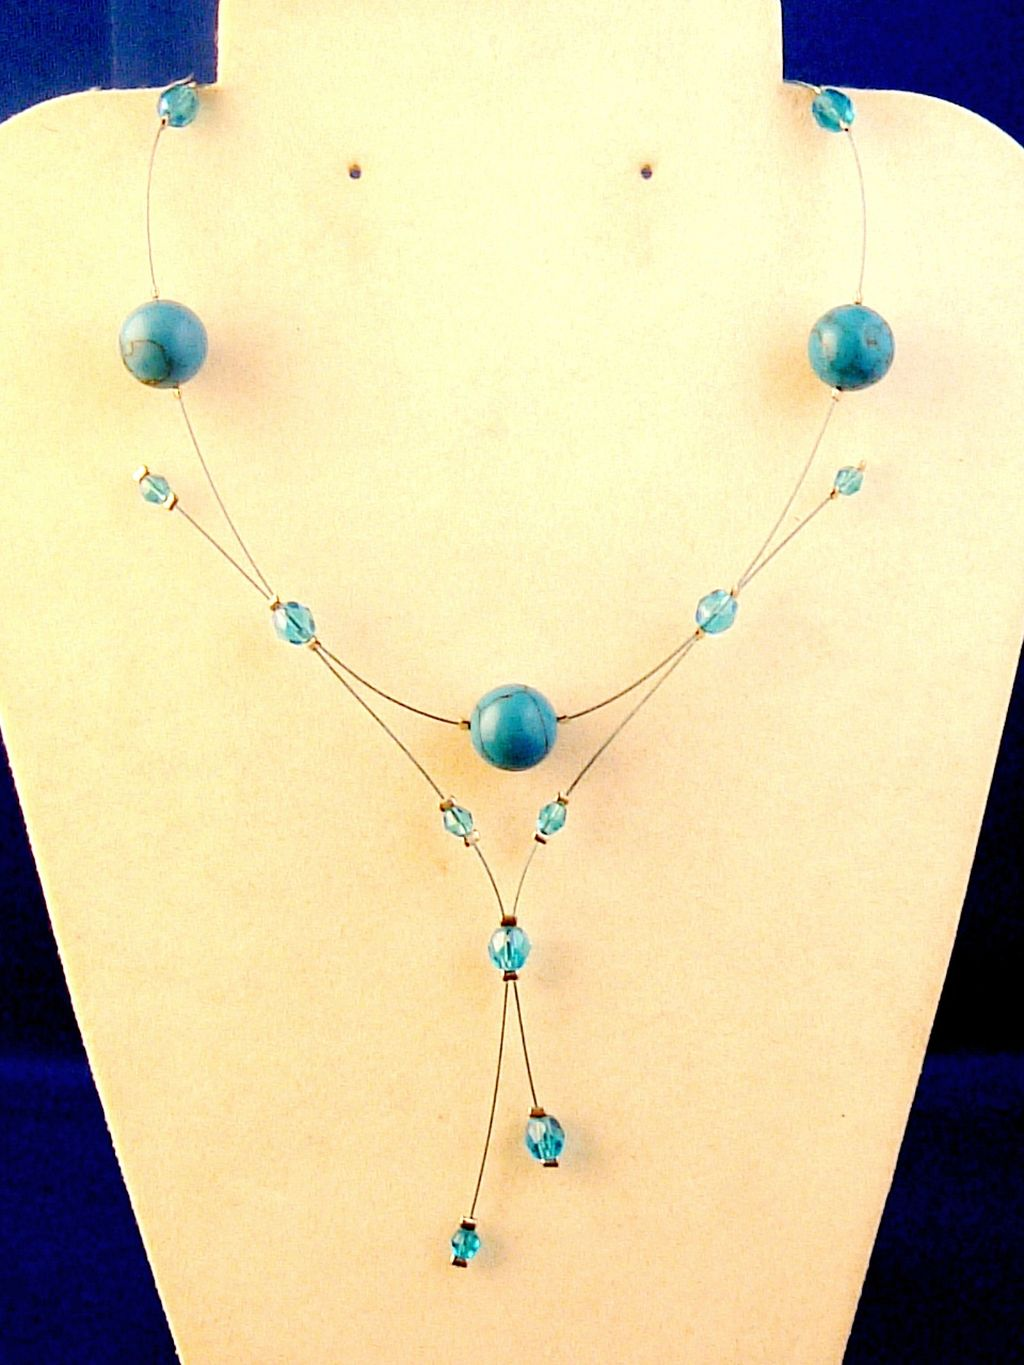 Turquoise / Sky Blue Ball Stones & Beads Necklace, Tiny Metal Cord, European Fashion Jewelry